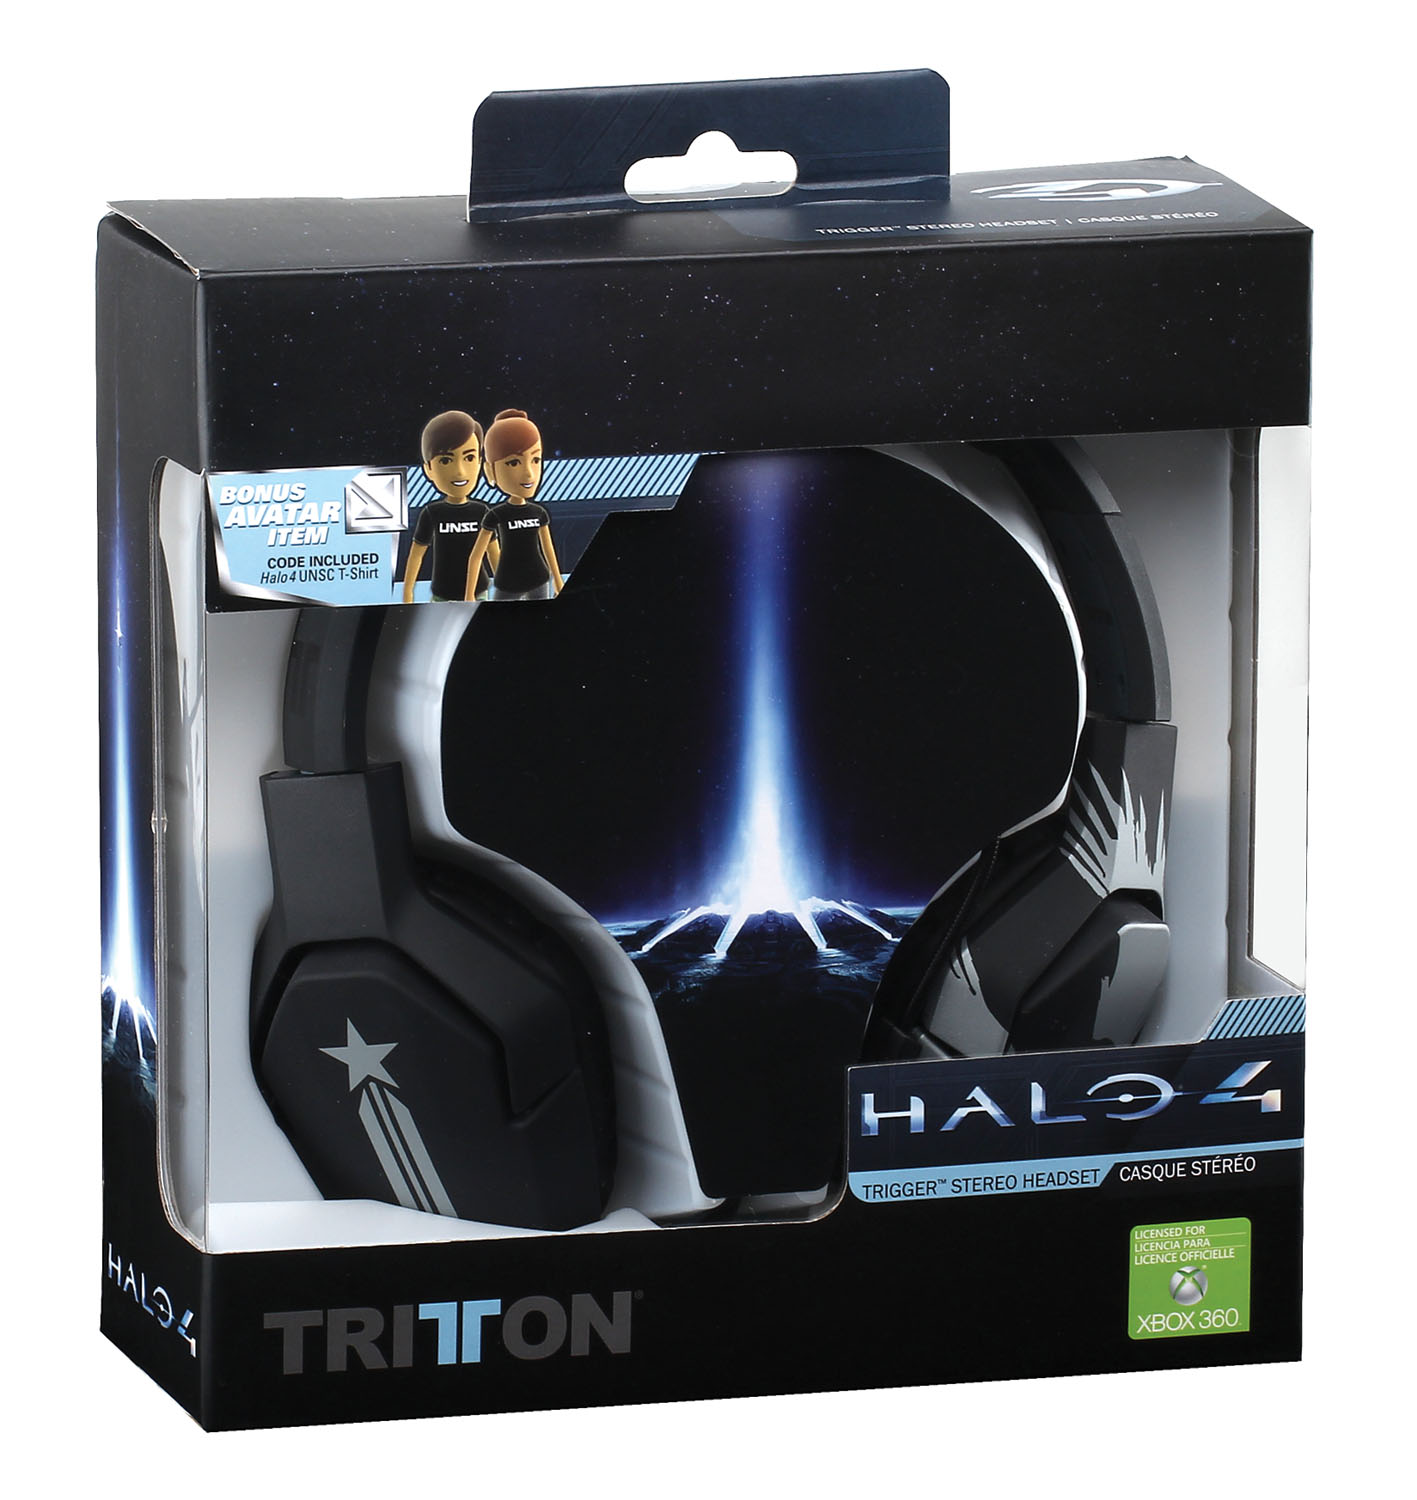 MadCatz Launches Full Halo 4 Line Brutal Gamer